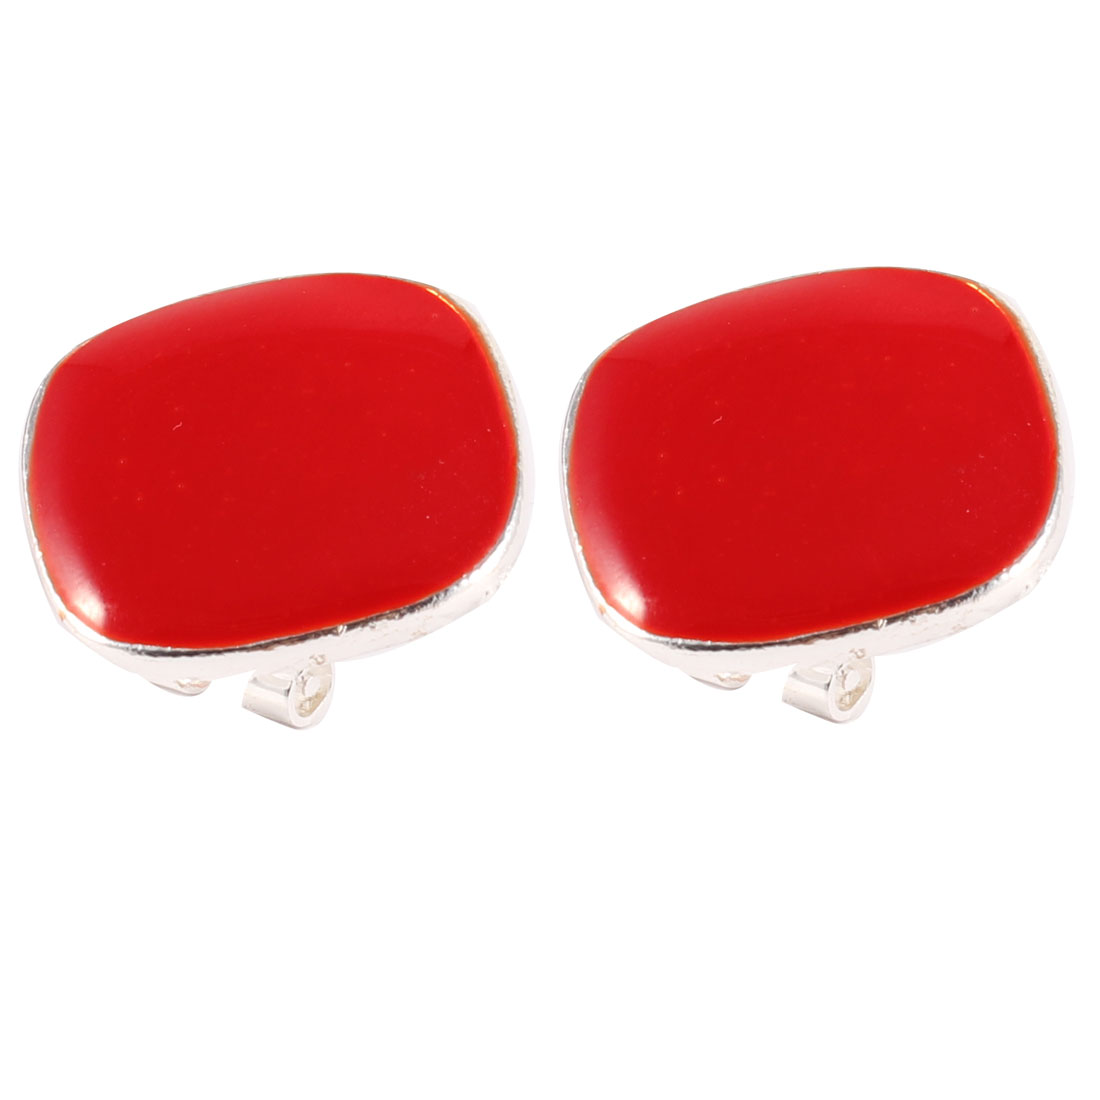 Attractive Red Silver Tone French Clip Earrings for Lady Woman